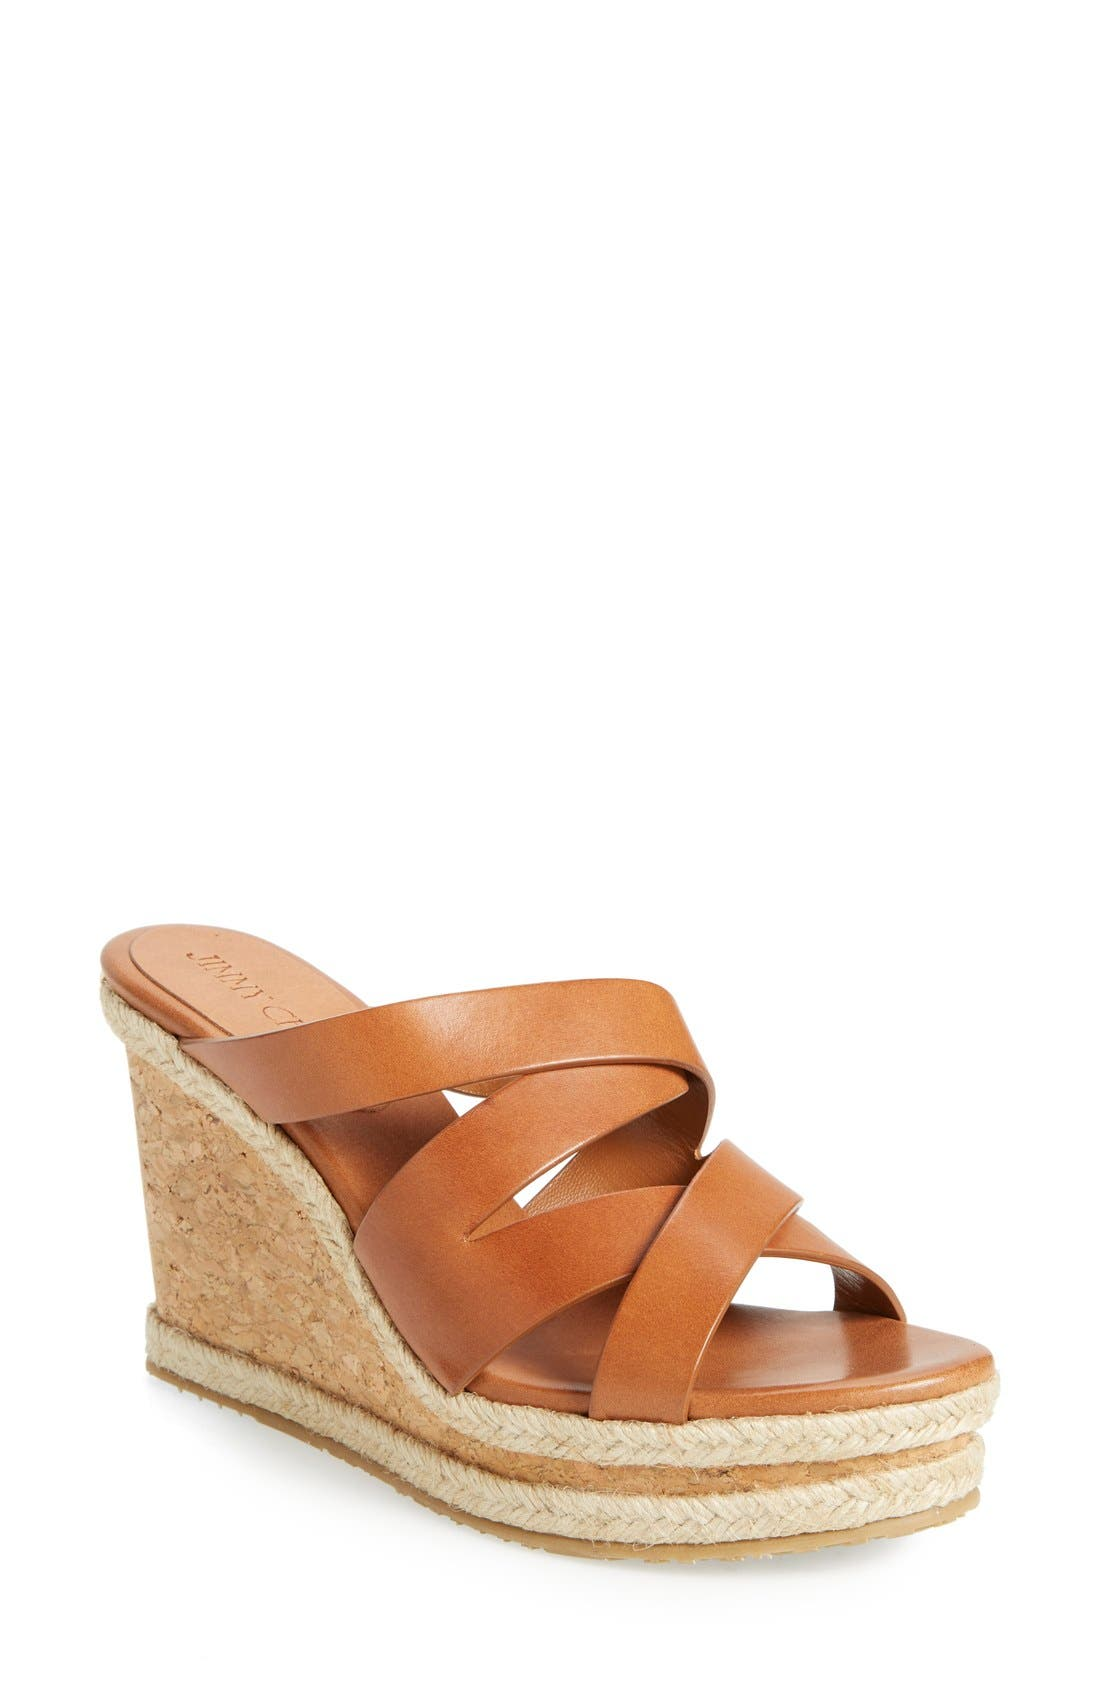 JIMMY CHOO 'Prisma' Leather Wedge Sandal